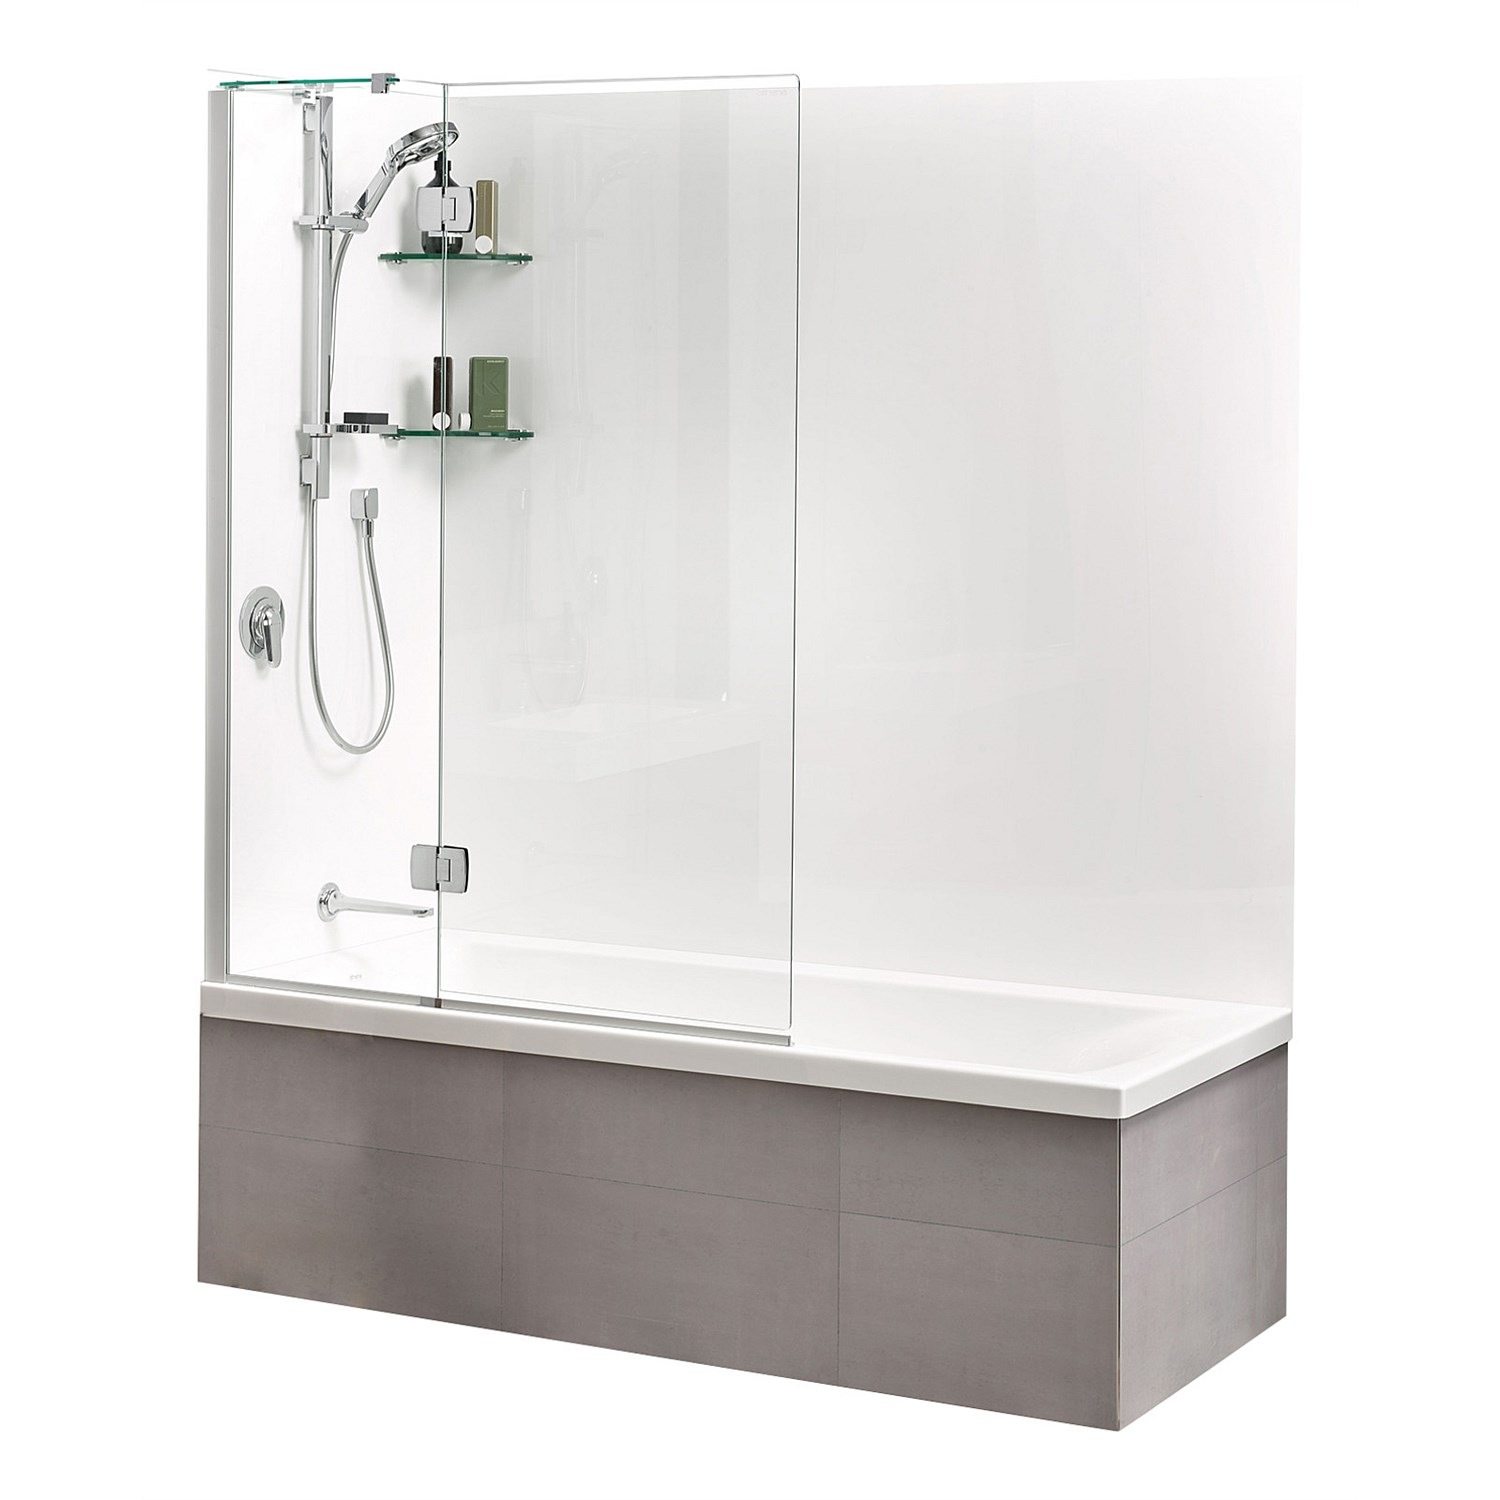 shower screens and doors athena allora 1100mm bath panel. Black Bedroom Furniture Sets. Home Design Ideas